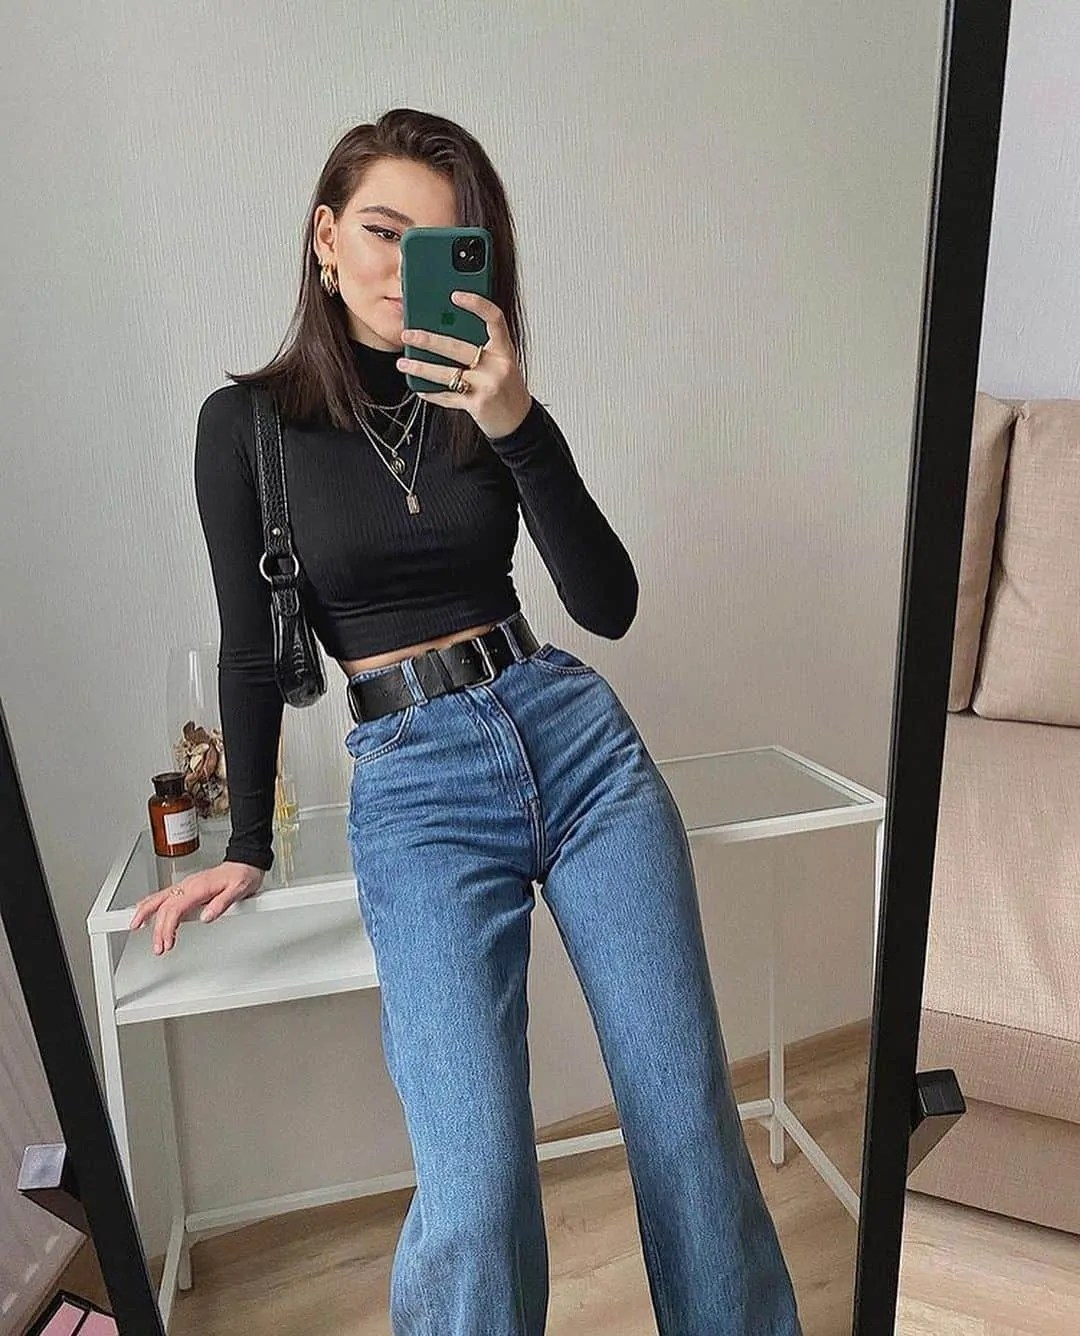 100+ fashion inspo outfits that you have to see no matter what your style is 149